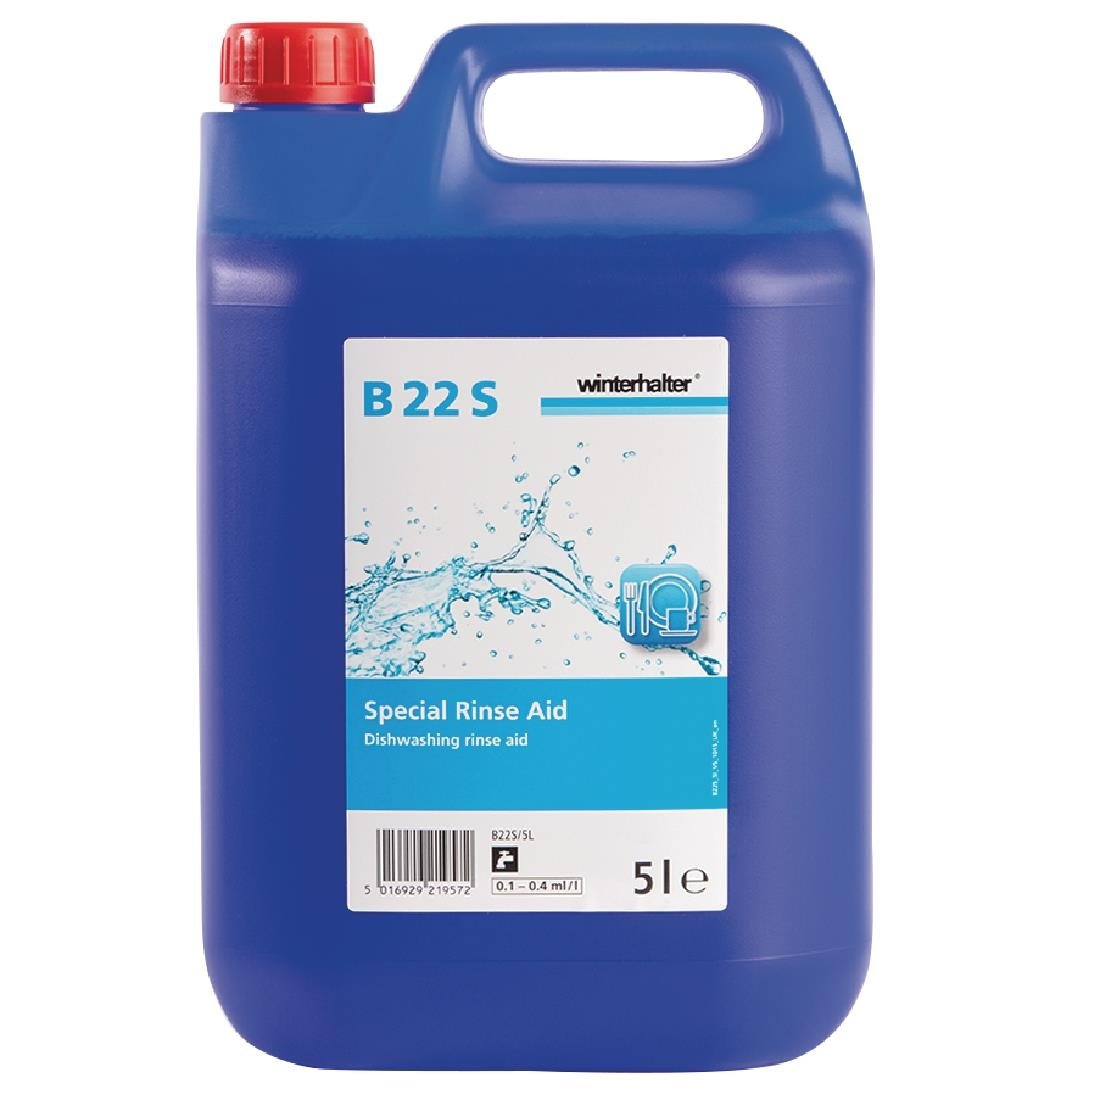 Winterhalter B22S Dishwasher Rinse Aid Concentrate 5Ltr (2 Pack) Pack of 2